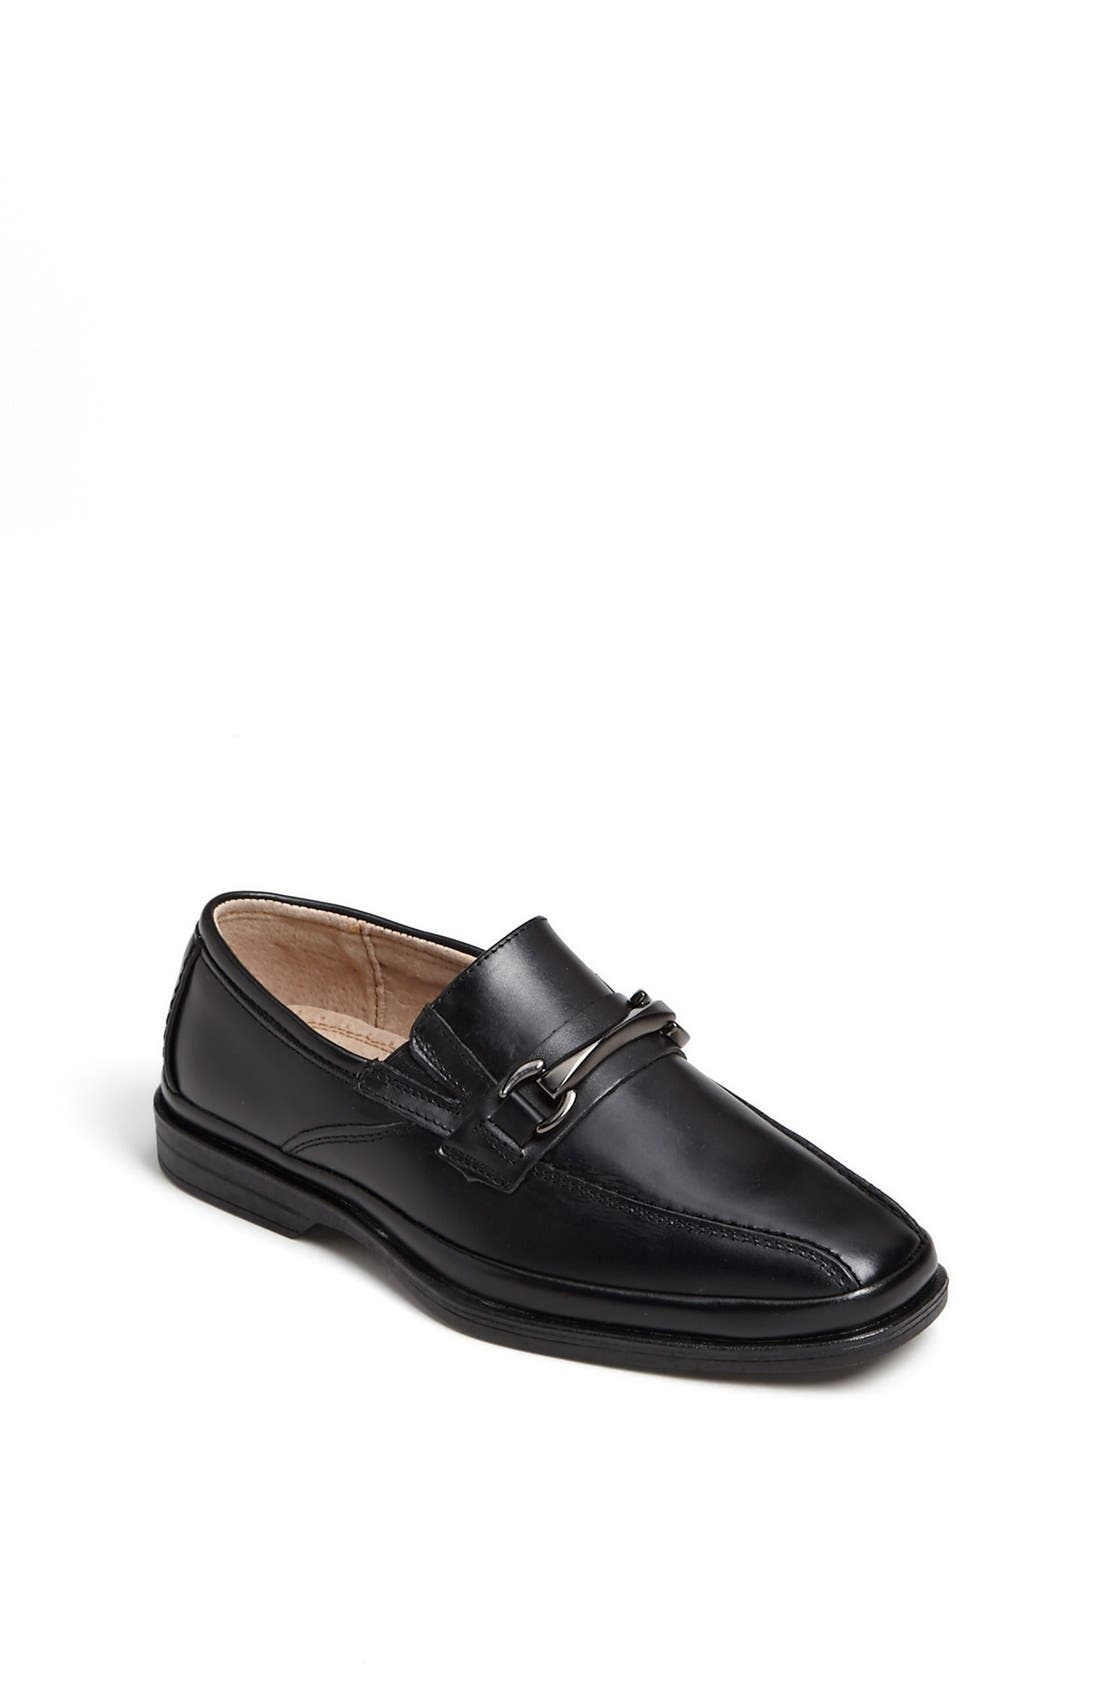 Alternate Image 1 Selected - Florsheim 'Wrapid Jr.' Slip-On (Toddler, Little Kid & Big Kid)